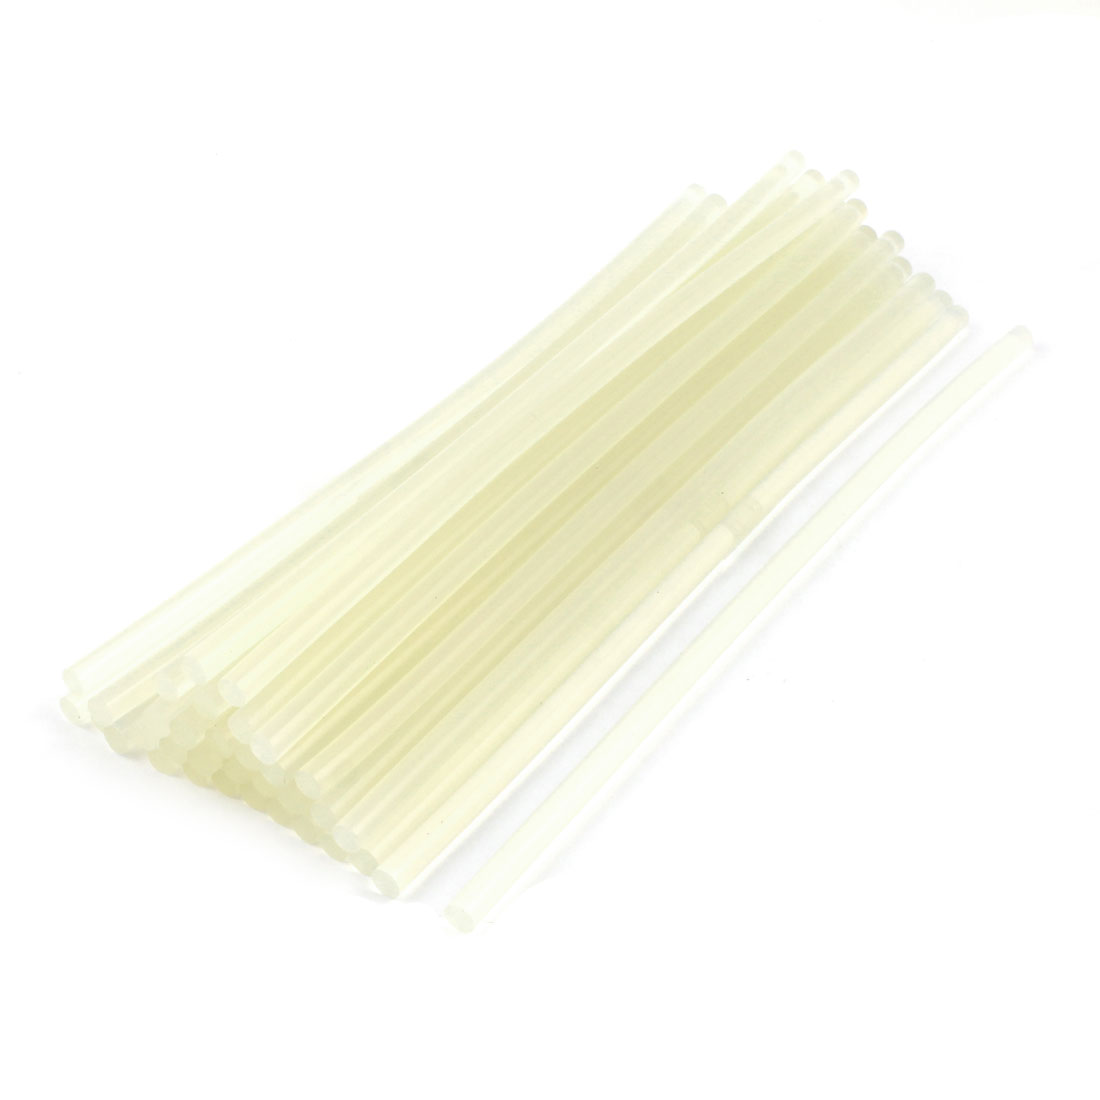 35 Pcs Clear White 7mmx255mm Soldering Iron Hot Melt Glue Stick Replacement